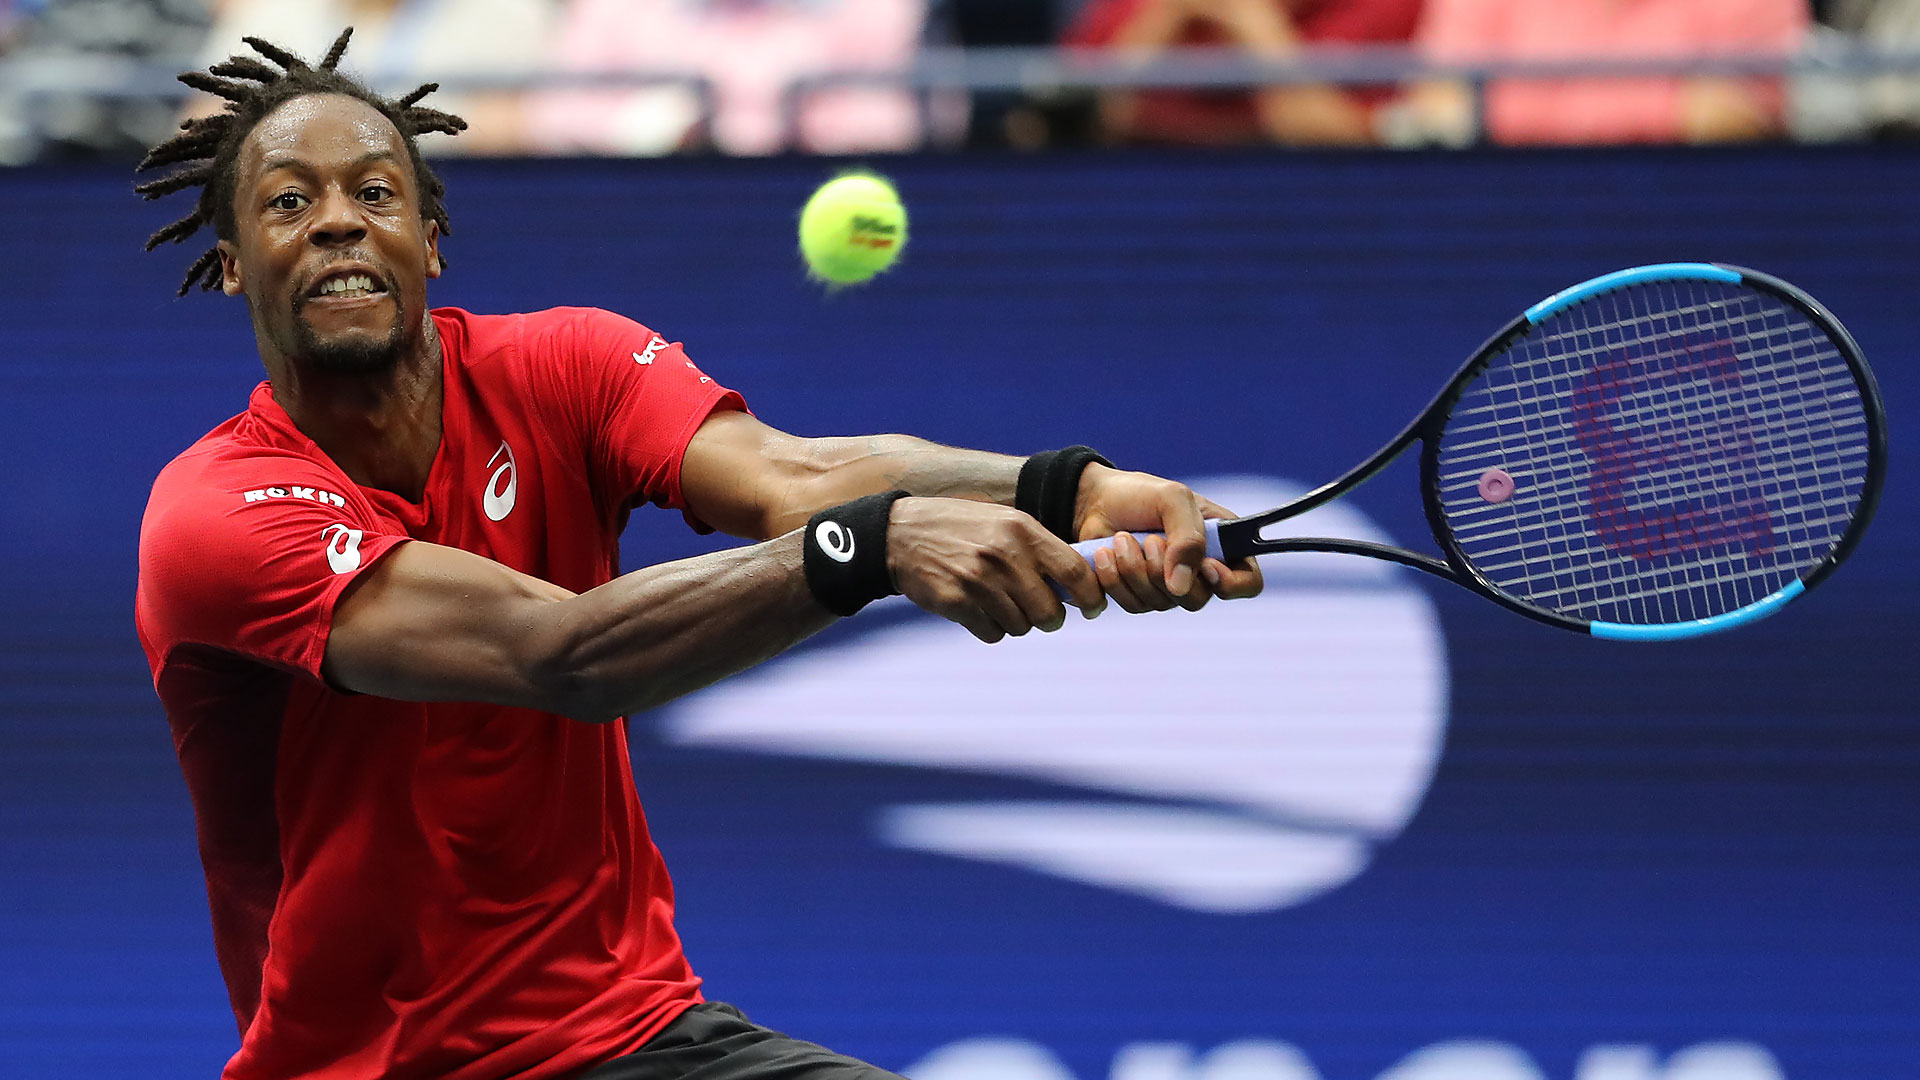 Monfils, fourth set